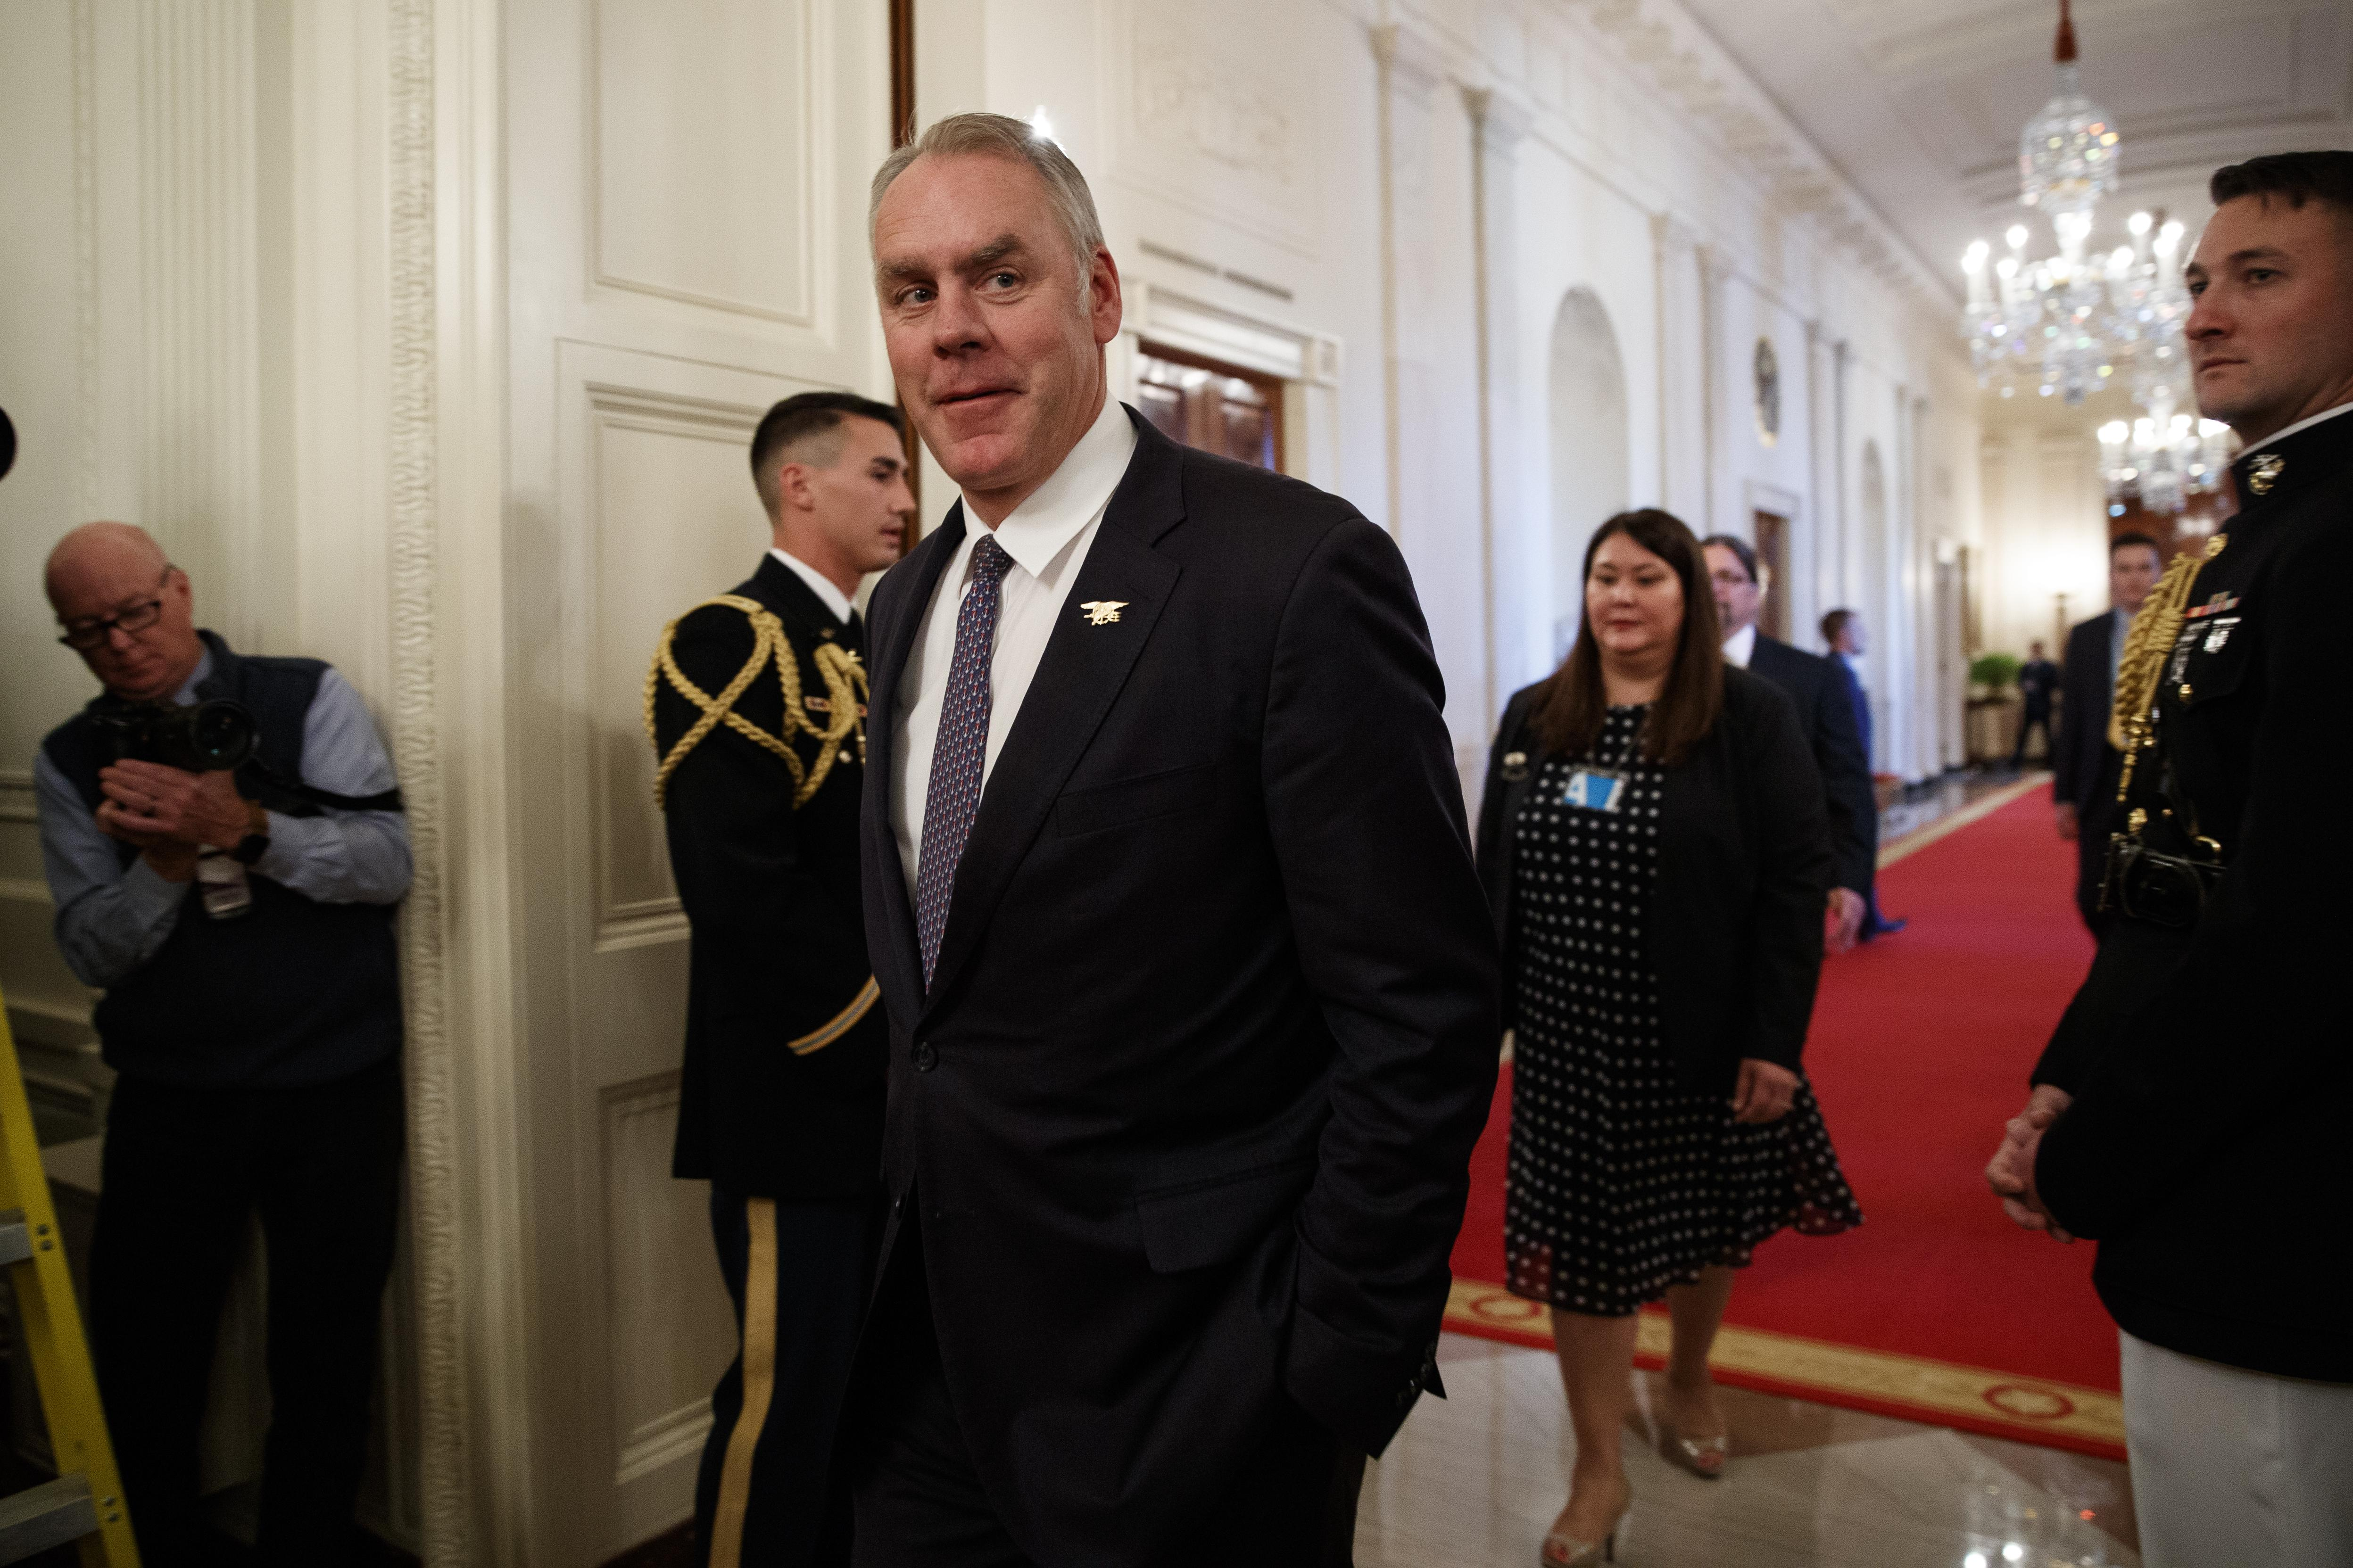 Zinke 100 Percent Confident He Ll Be Cleared In Probes The Spokesman Review